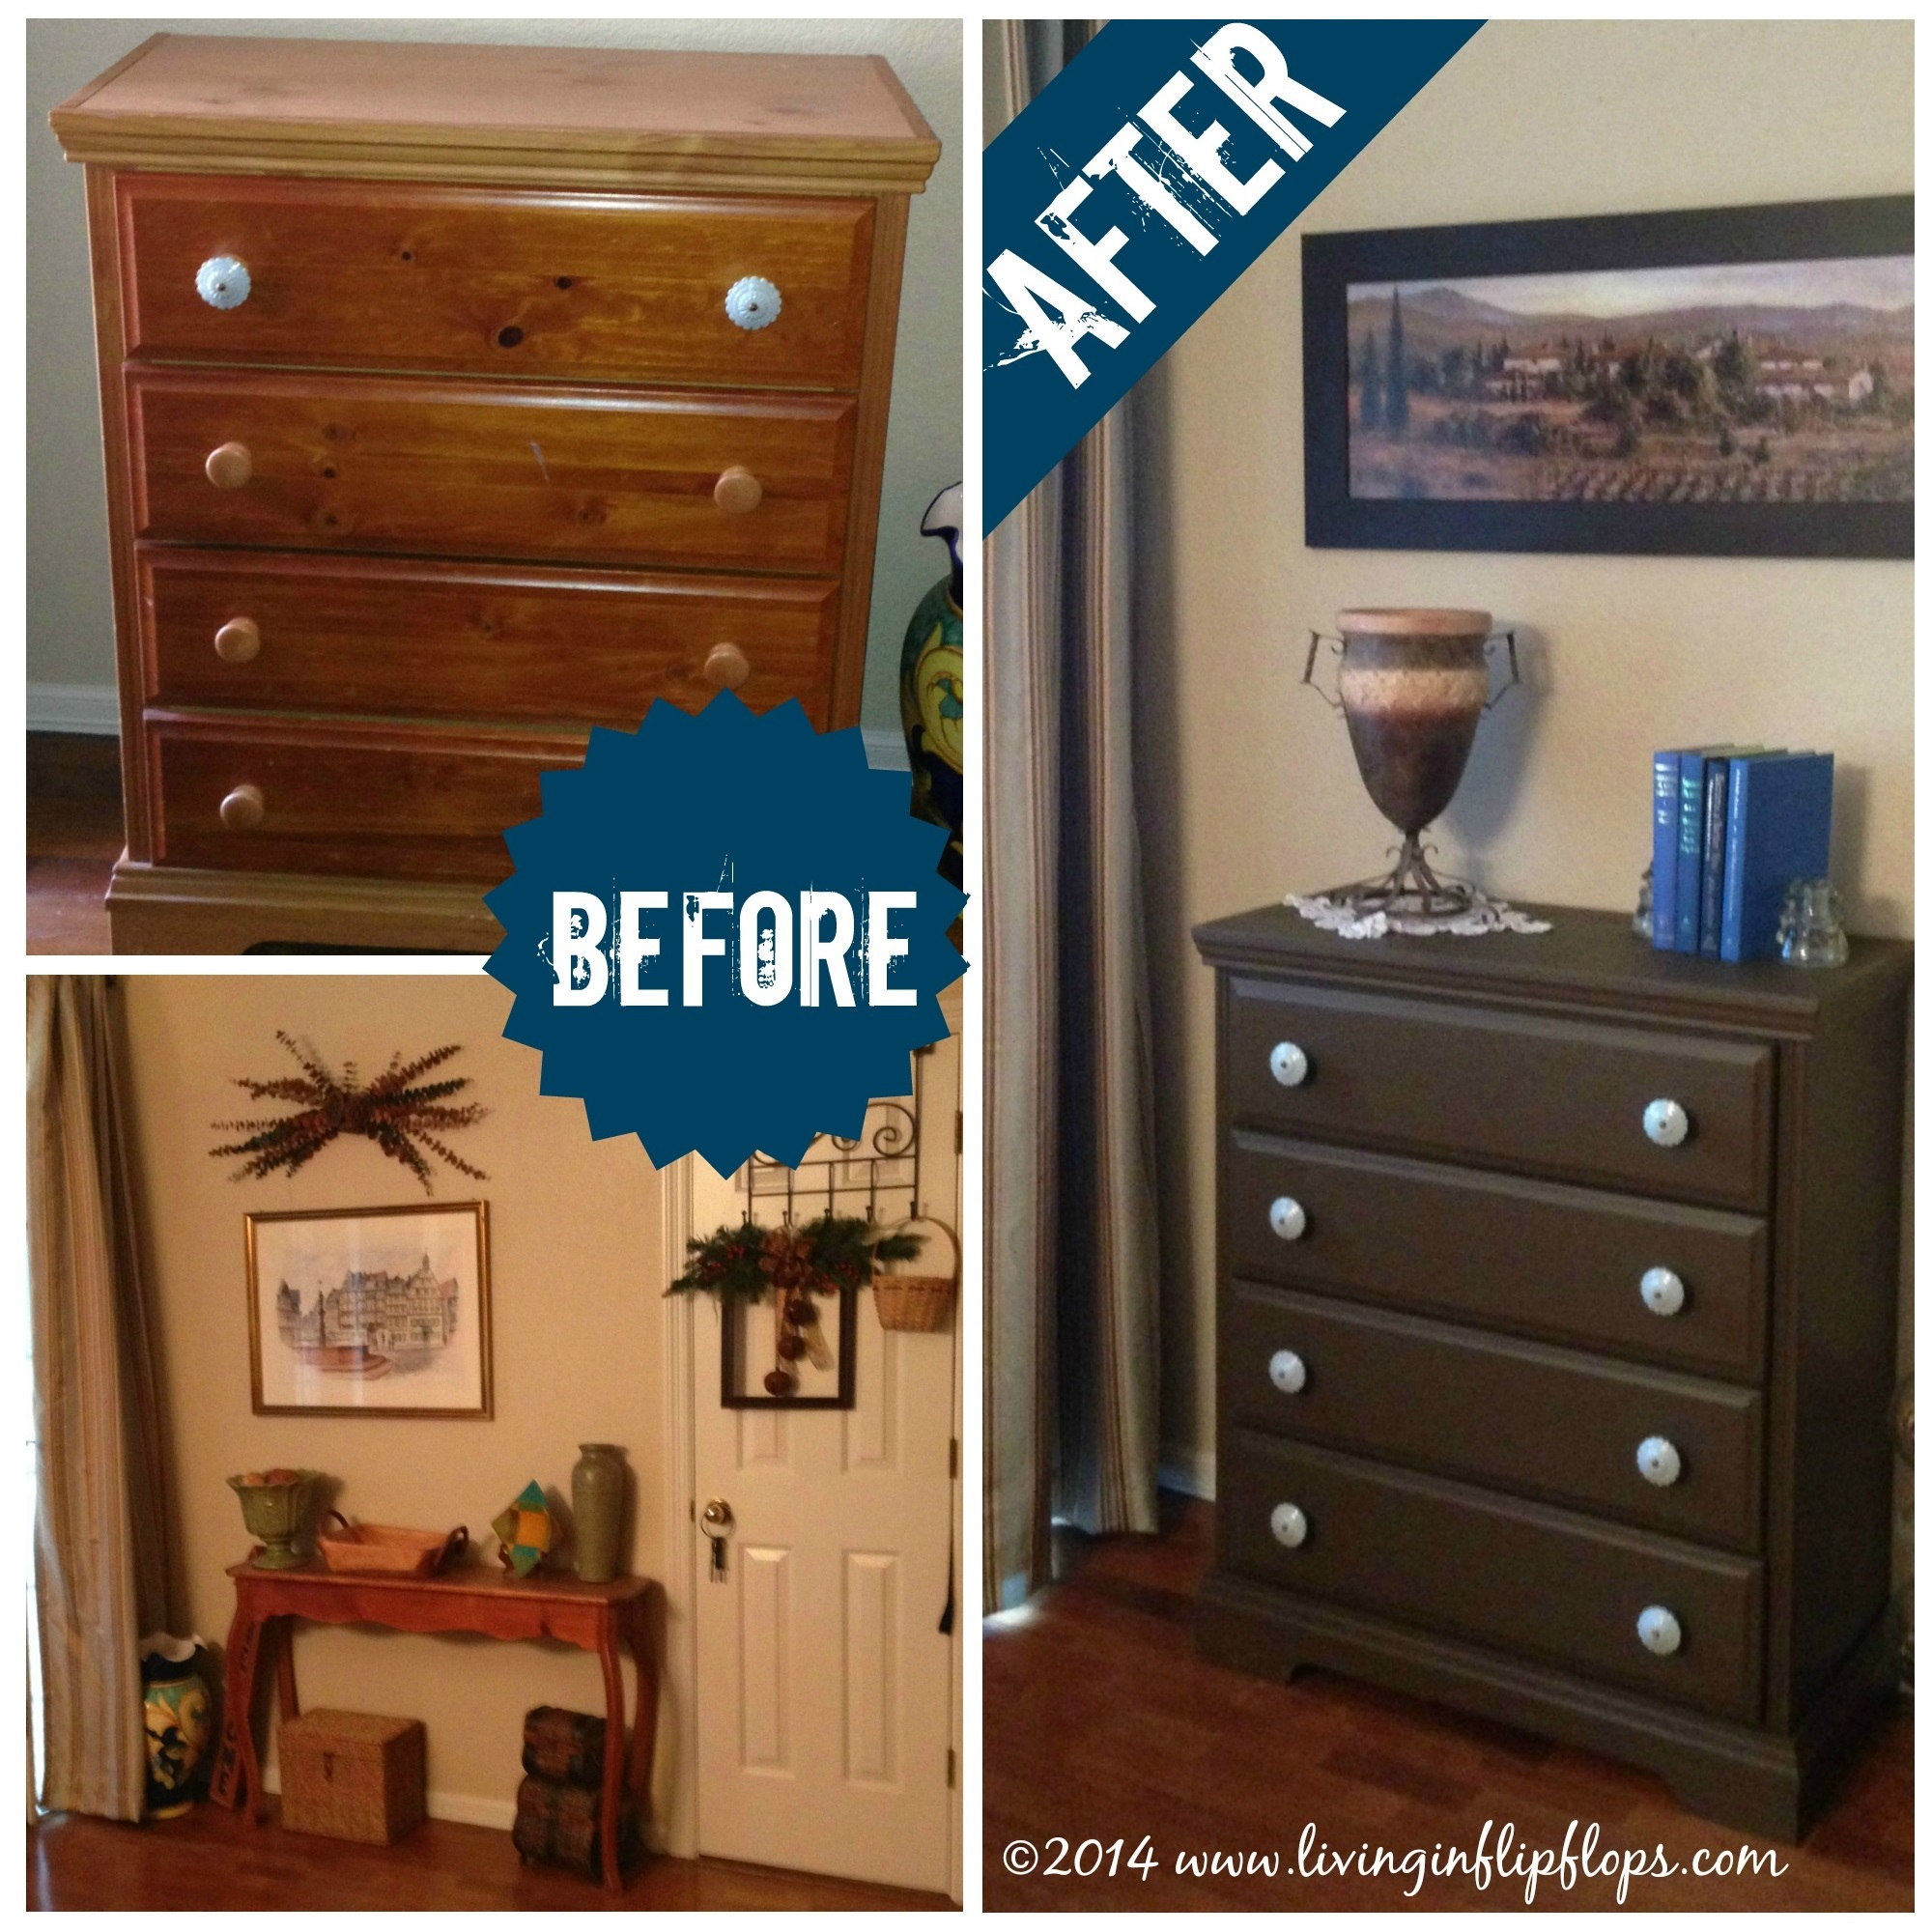 Living in flip flops intentionally thriving in a plan b life page 4 - Furnitur photos ...